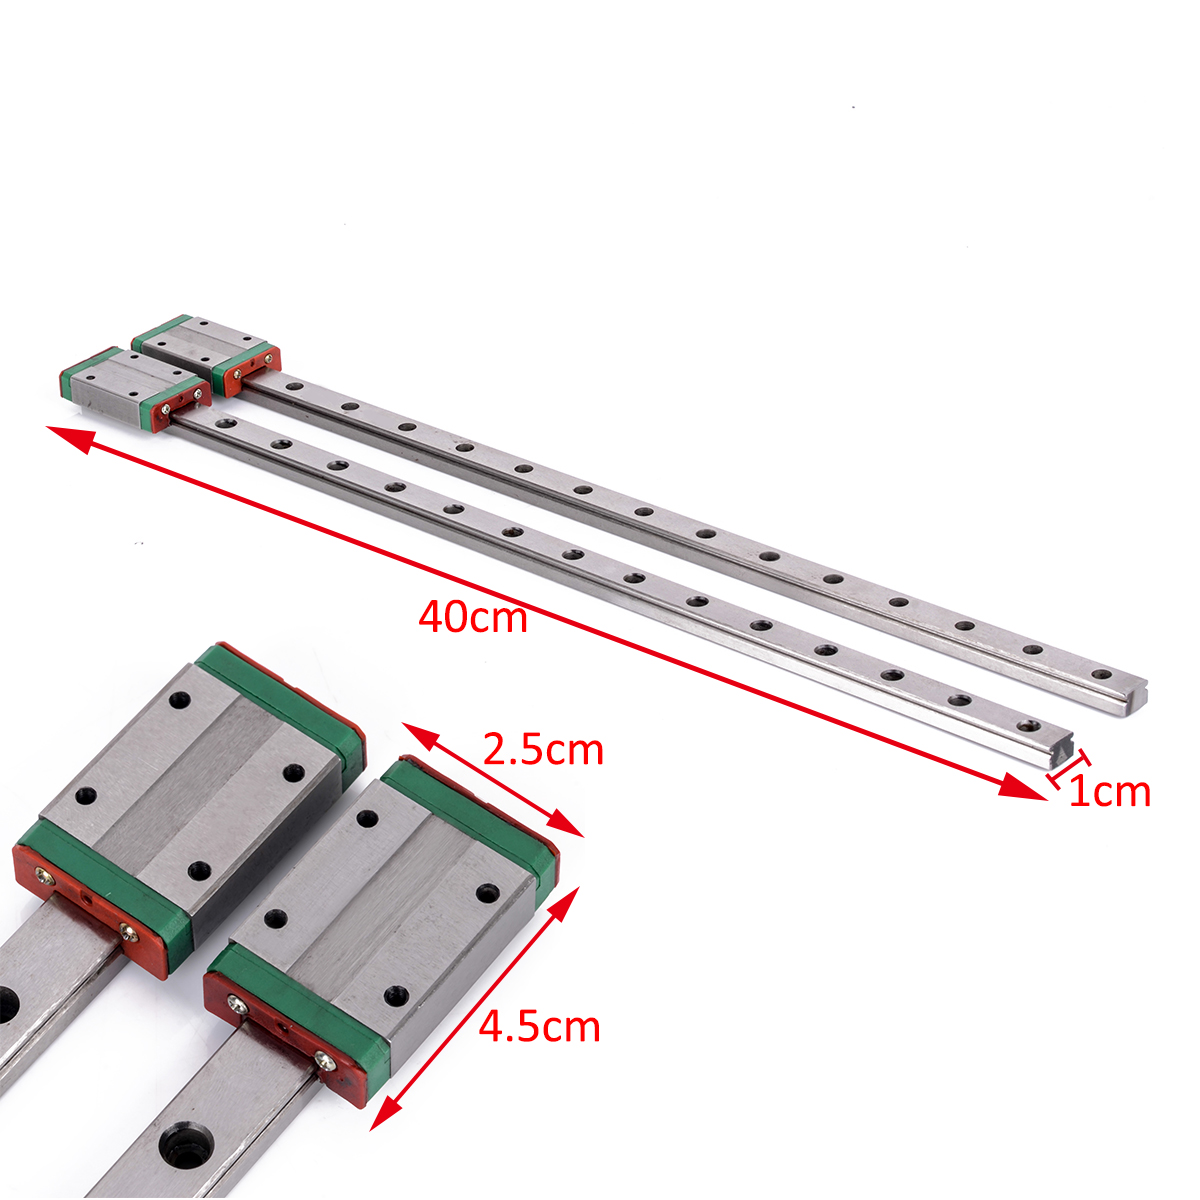 2pcs L400mm 12mm MGN12 Linear Rail Guide Slider with MGN12 Carriage Block Kits Set For  3D Printer Parts Mayitr стоимость